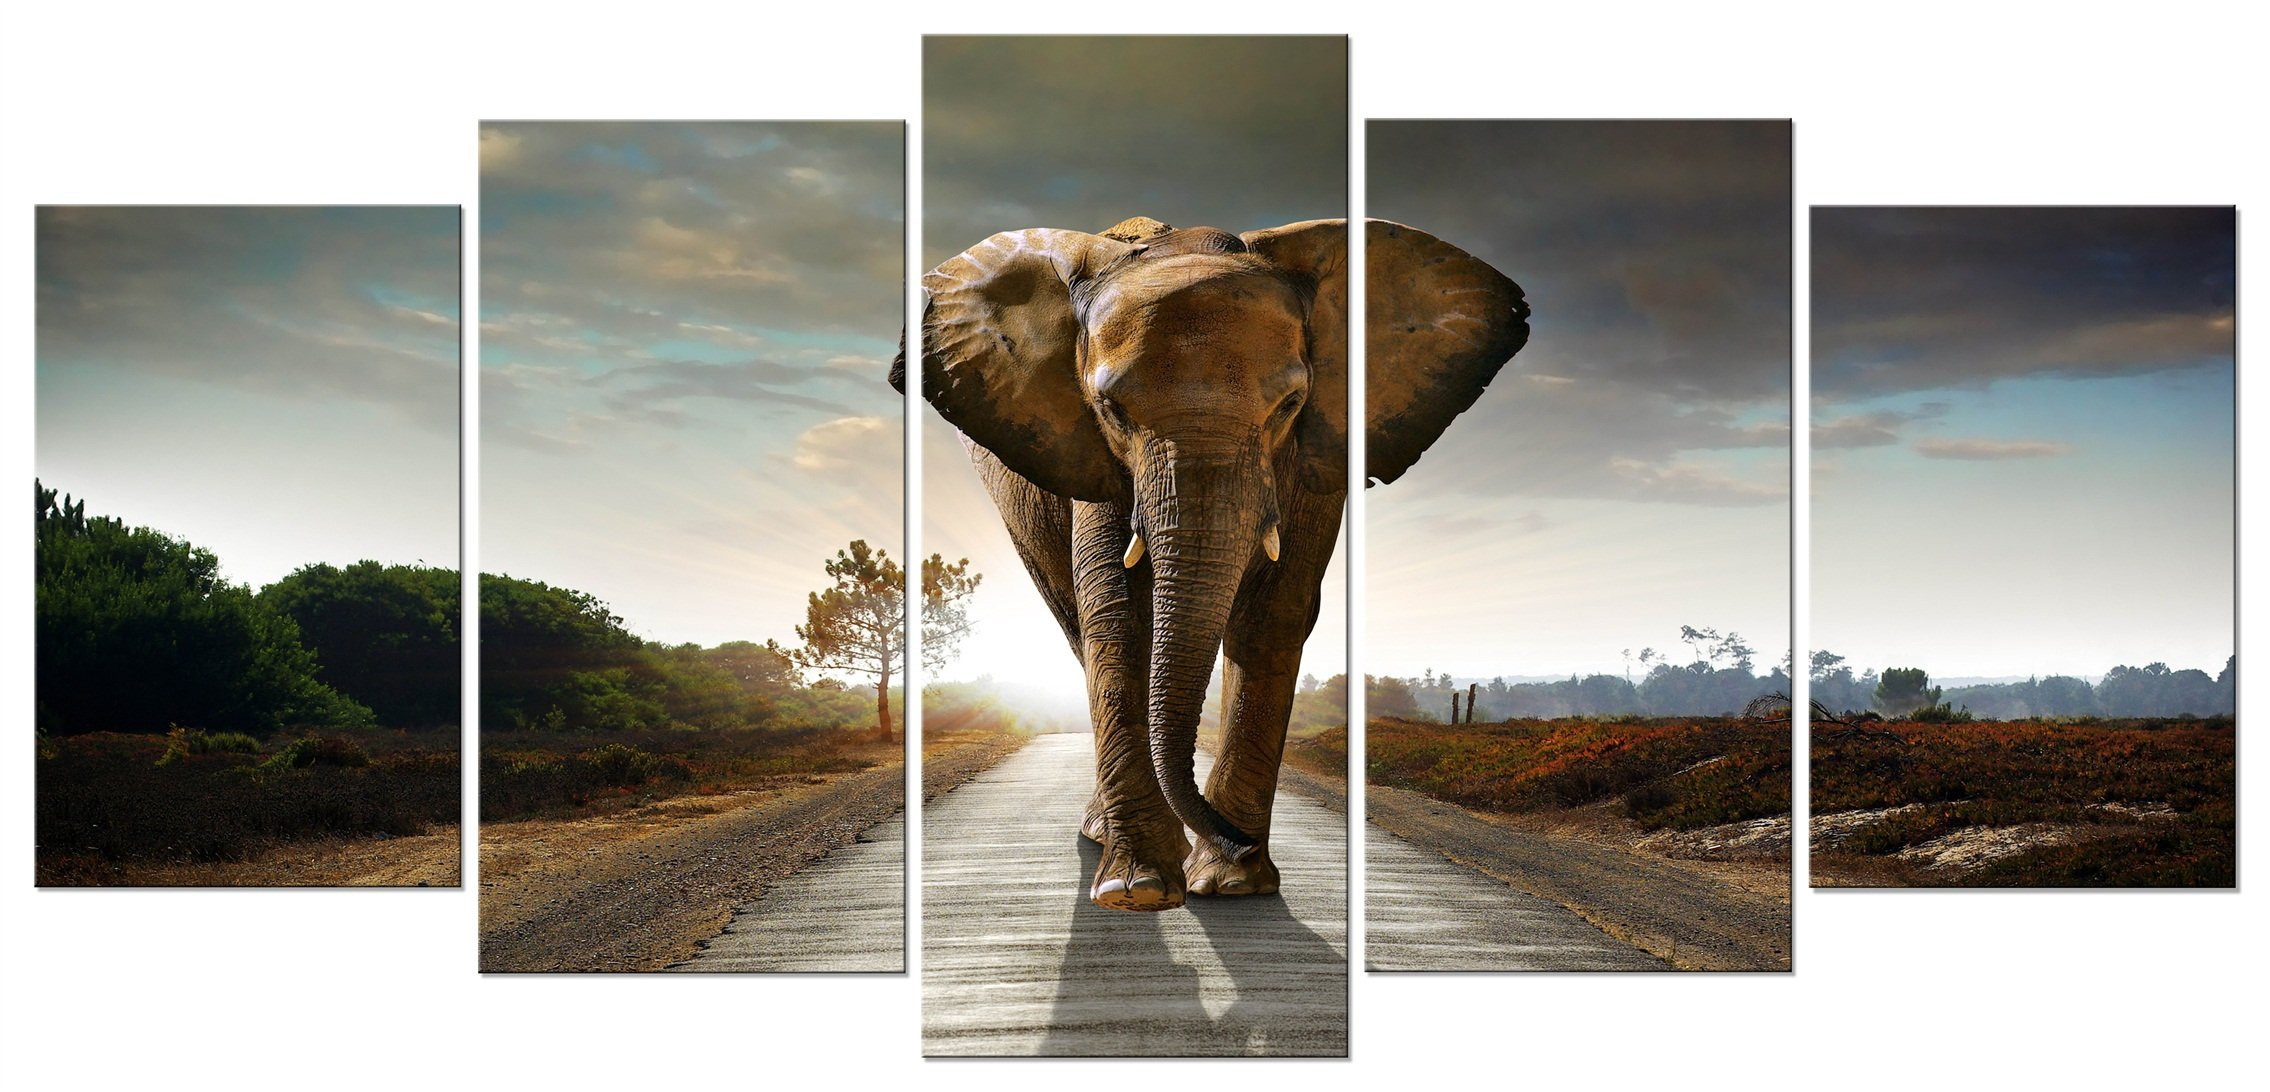 Best ideas about Elephant Wall Art . Save or Pin Elephant Wall Decor Amazon Now.